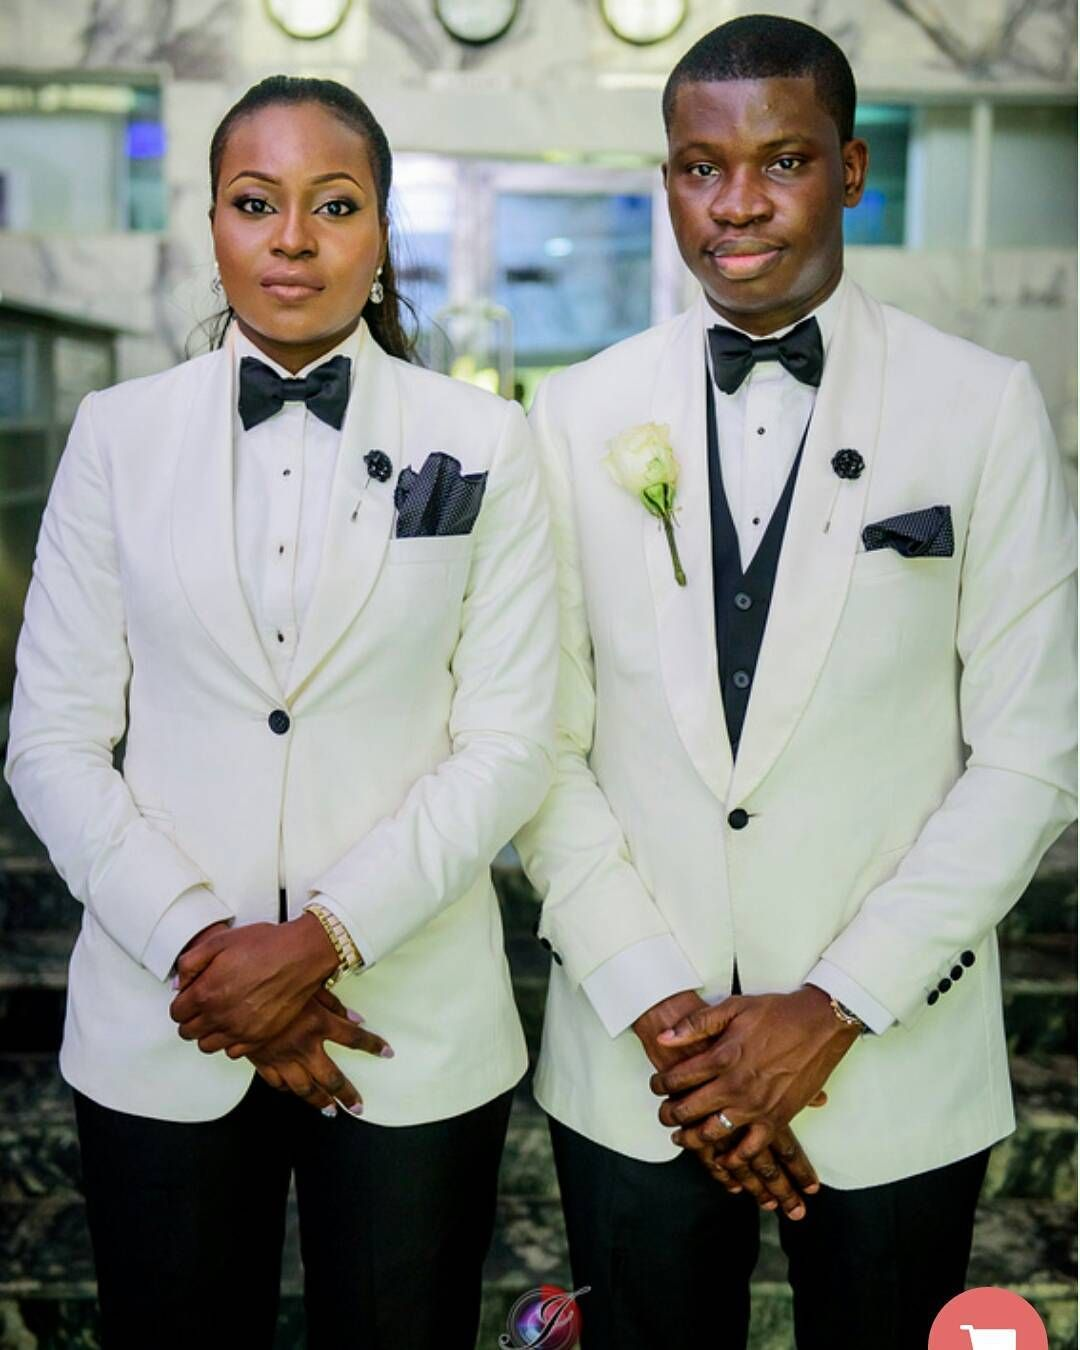 Lady Is Her Brother S Best Man At His Wedding In Nigeria Photos